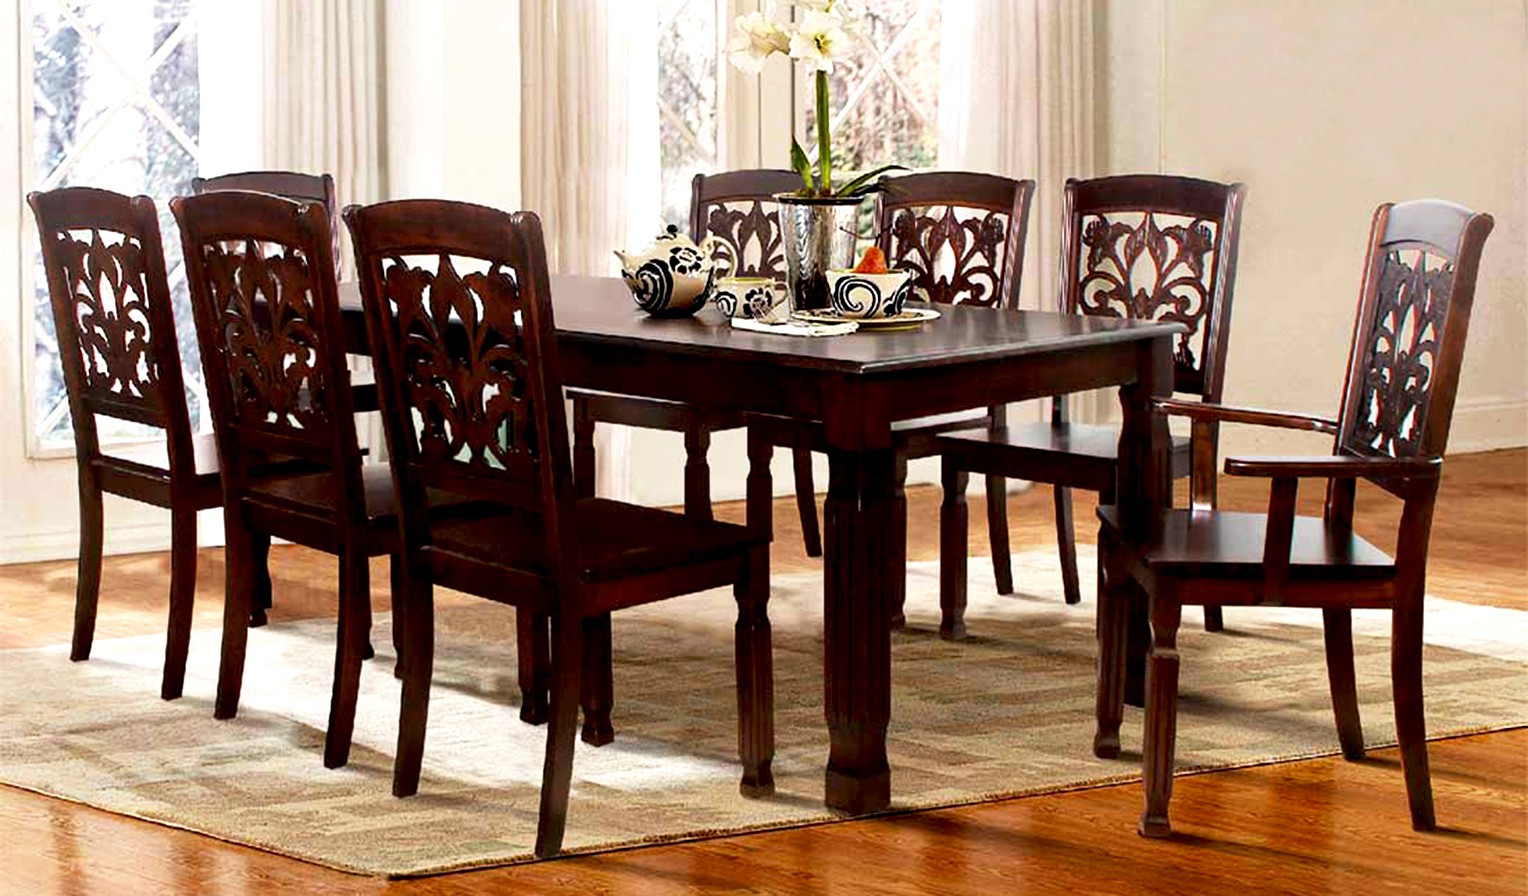 f1a0670d988 FurnCulture Furniture Price List. FurnCulture Sapporo Solid Wood 8 Seater  Dining Set(Finish ...